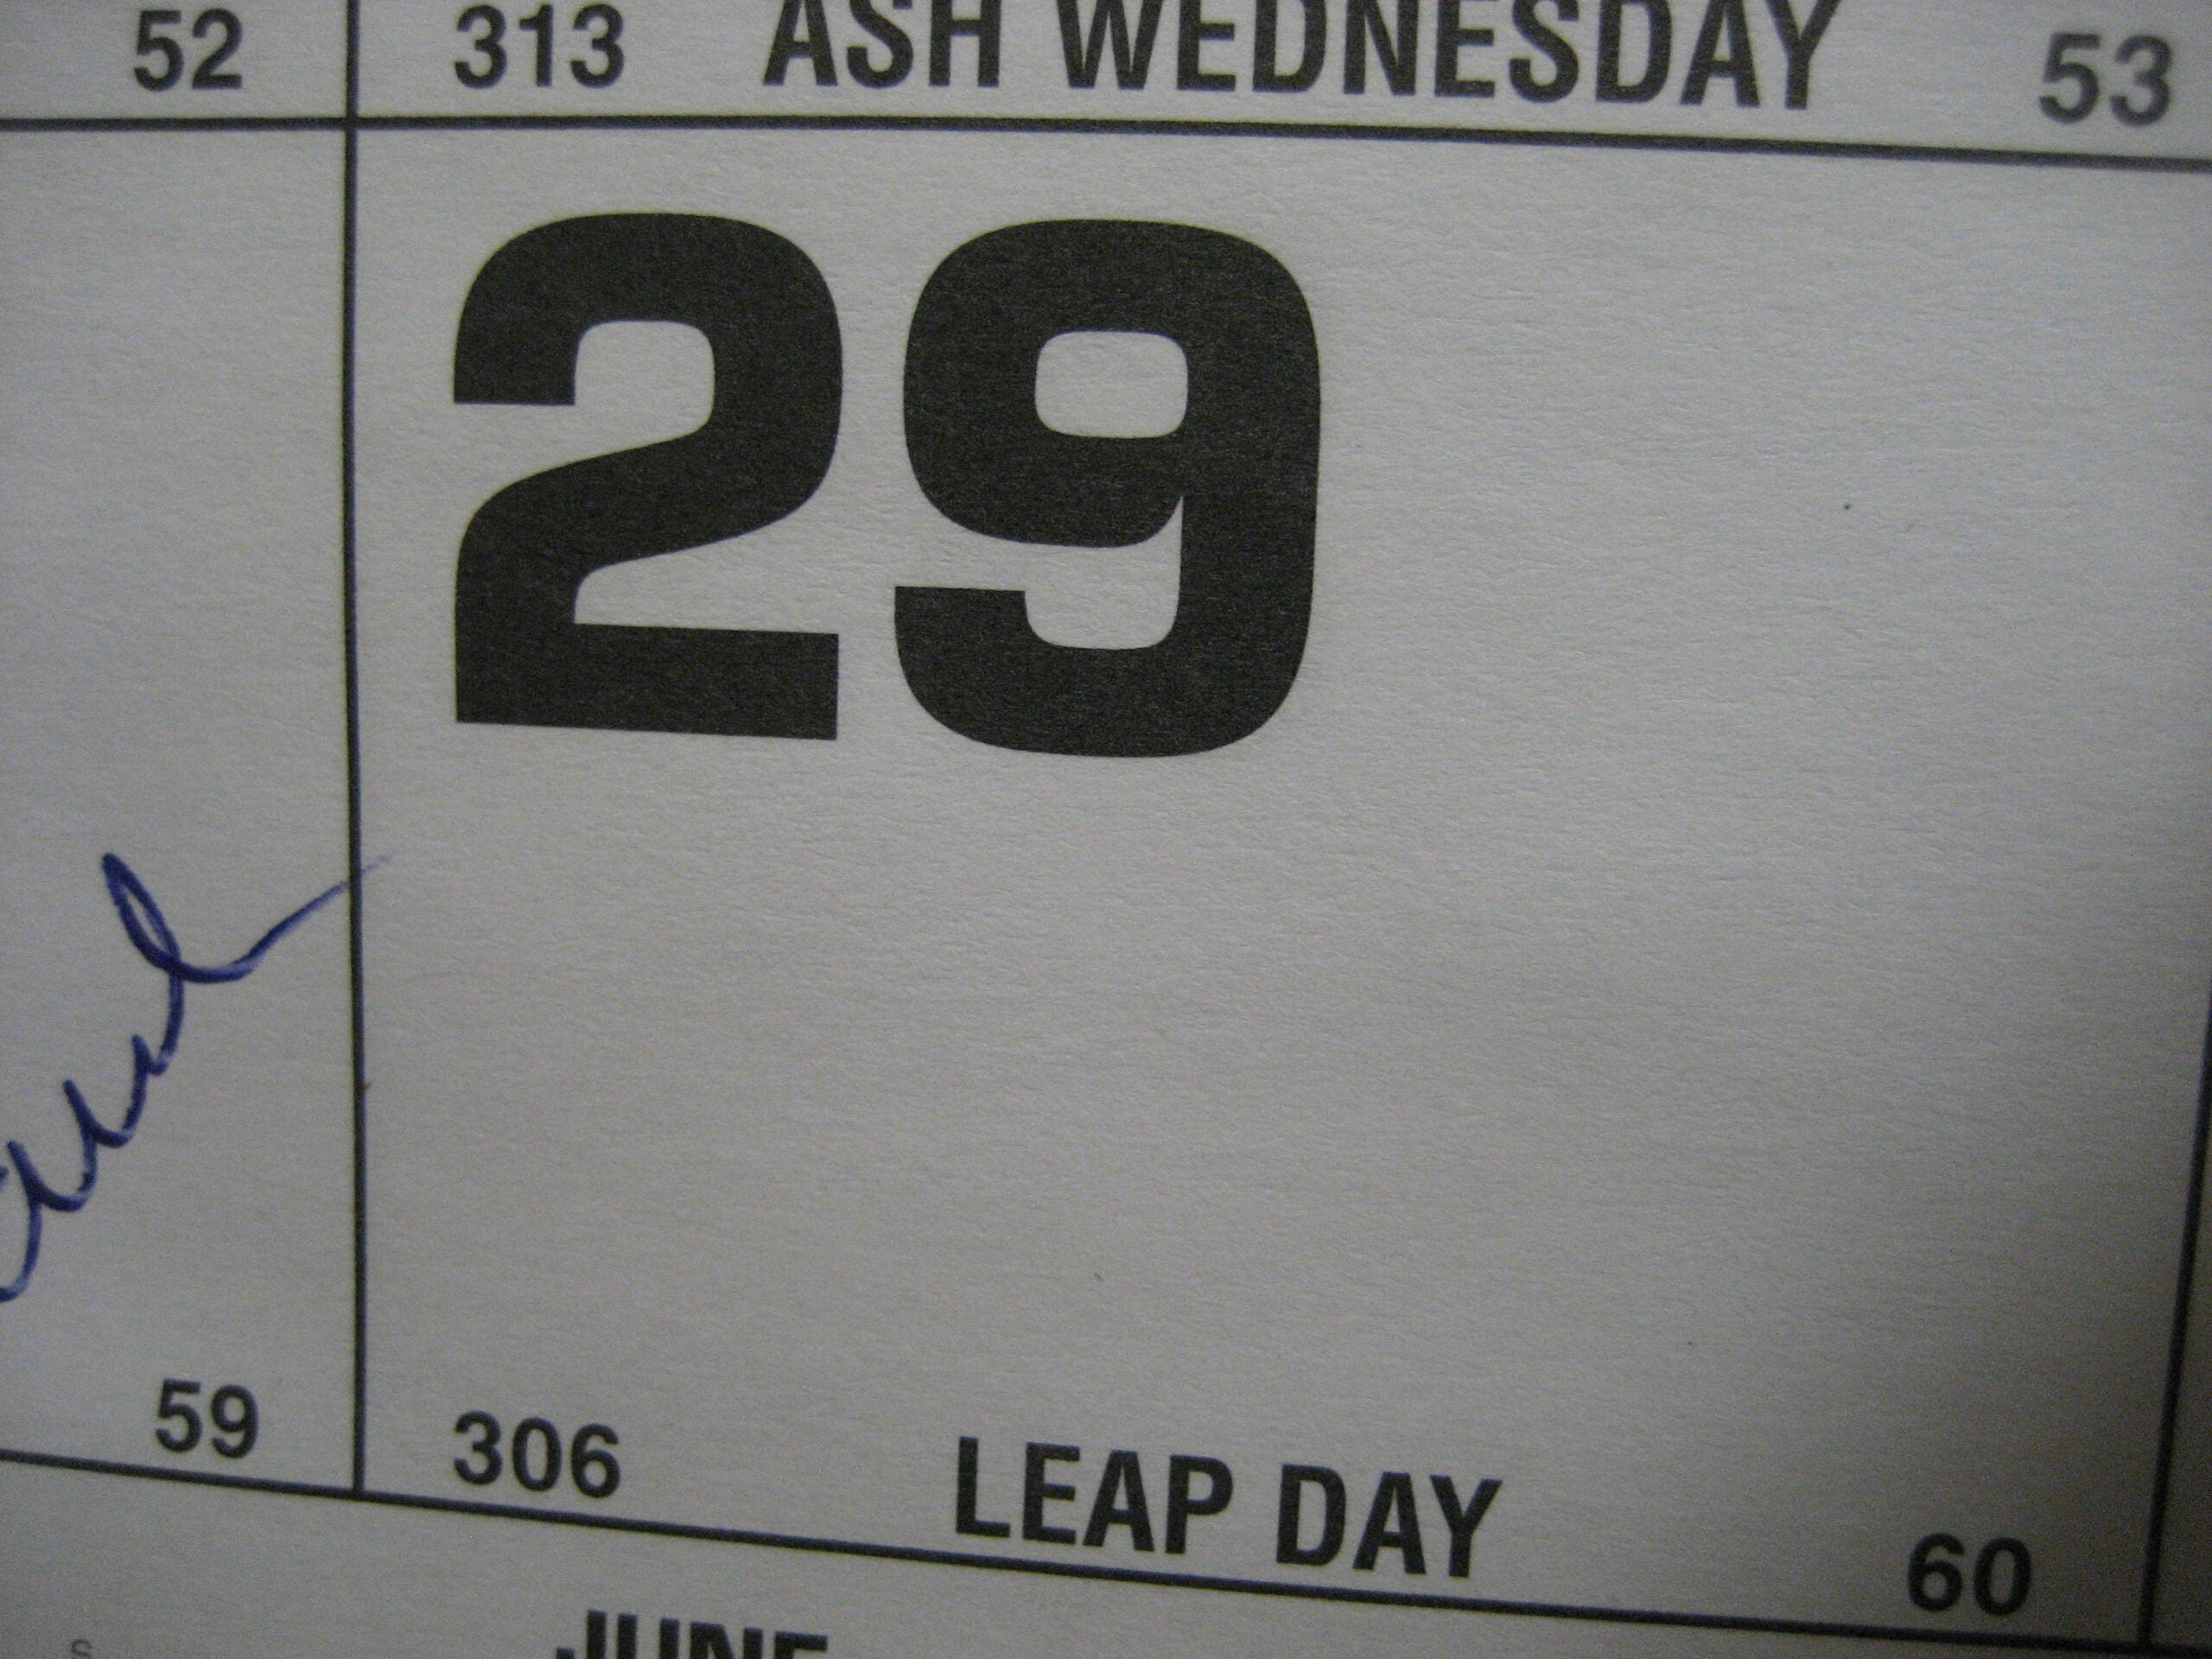 Neil deGrasse Tyson Explains Why We Have A Leap Day